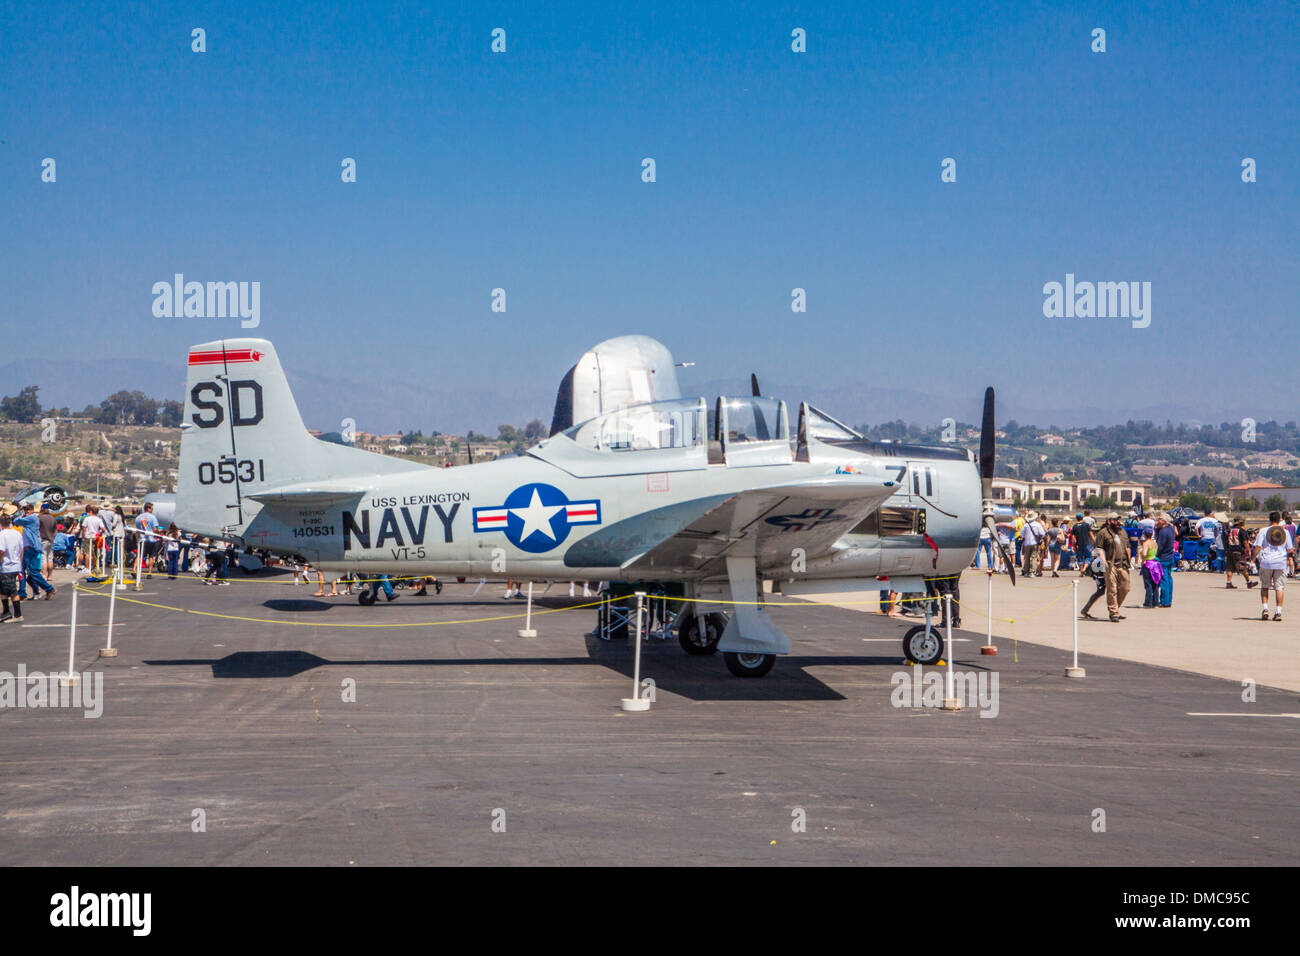 T-28 Trainer with bomb at The Wings over Camarillo Air Show In Camarillo California - Stock Image